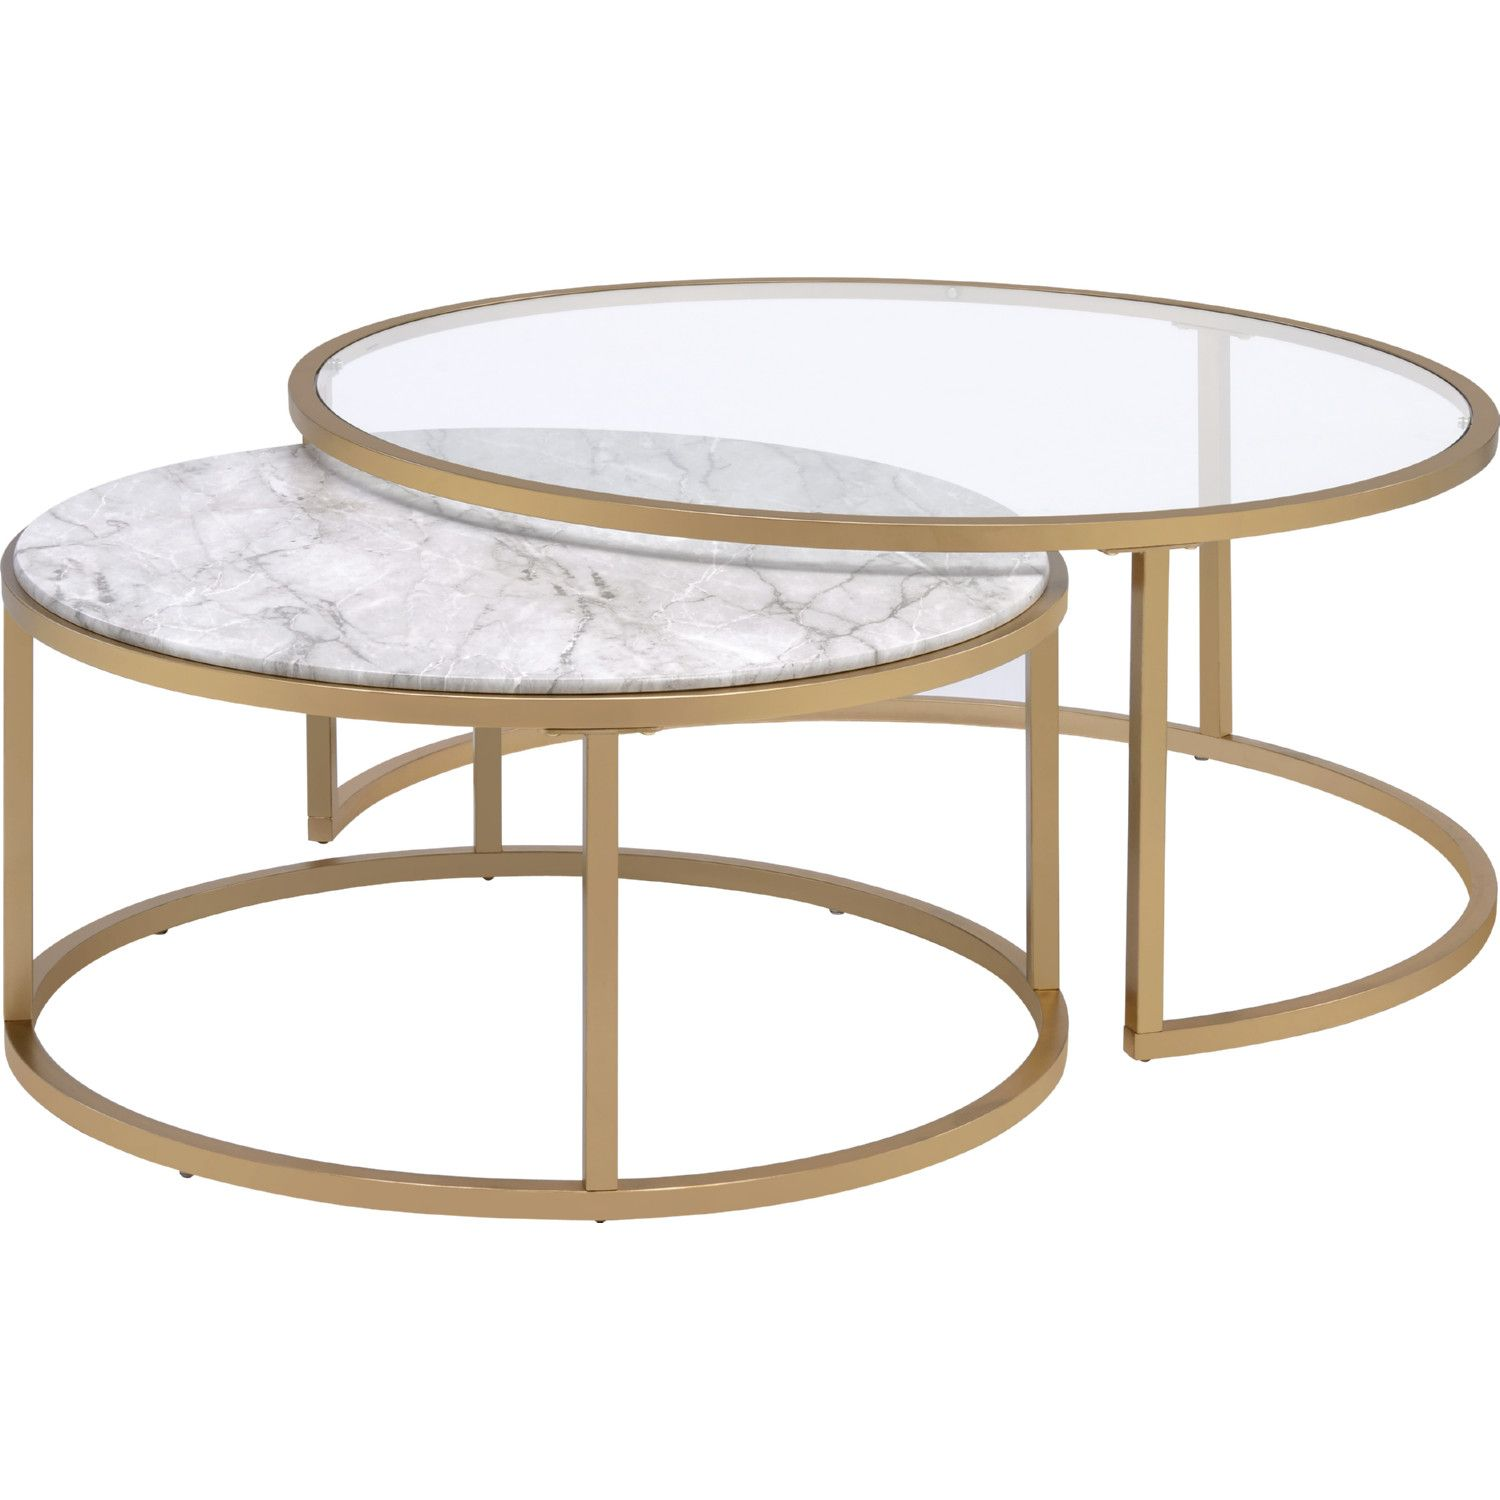 Acme Furniture 81110 Shanish 2 Piece Nesting Table Set Faux Marble Gold Nesting Coffee Tables Gold Nesting Coffee Table Coffee Table [ 1500 x 1500 Pixel ]